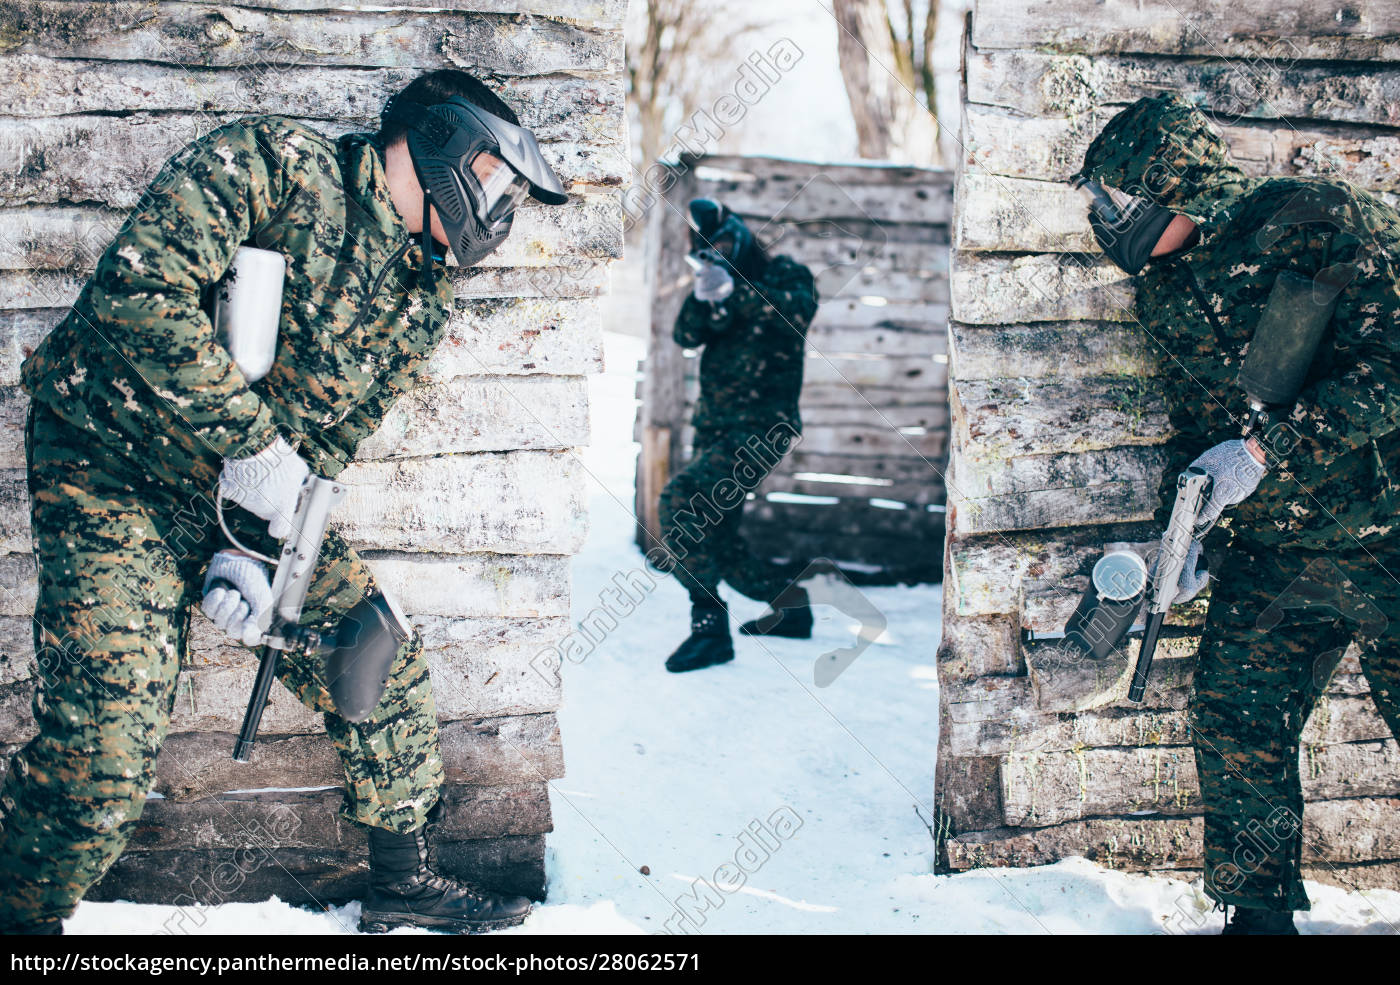 paintball, battle, , paintballing, in, winter, forest - 28062571